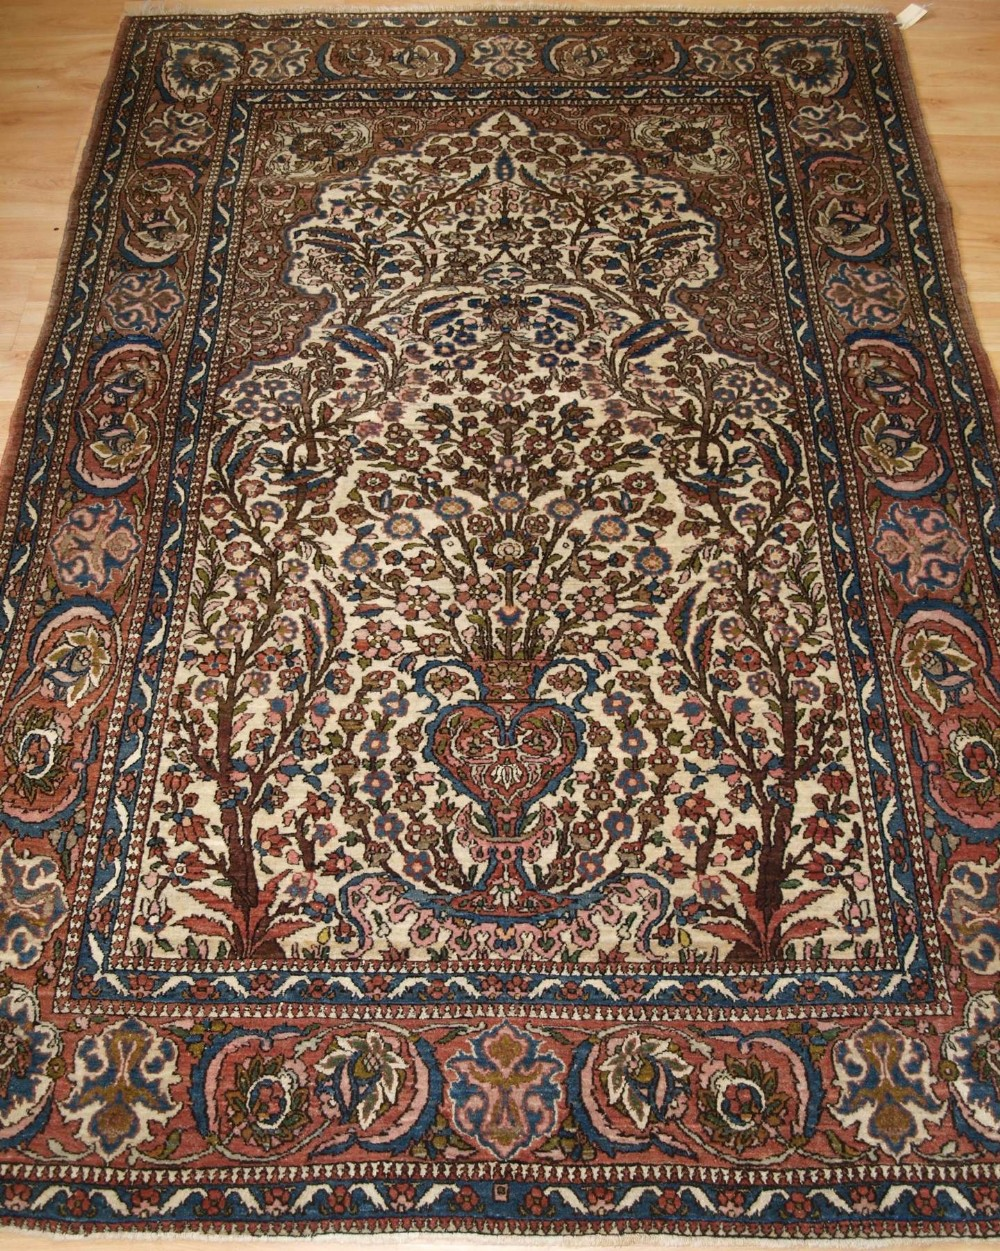 antique isfahan prayer rug of floral vase design one of a pair 1 circa 1900